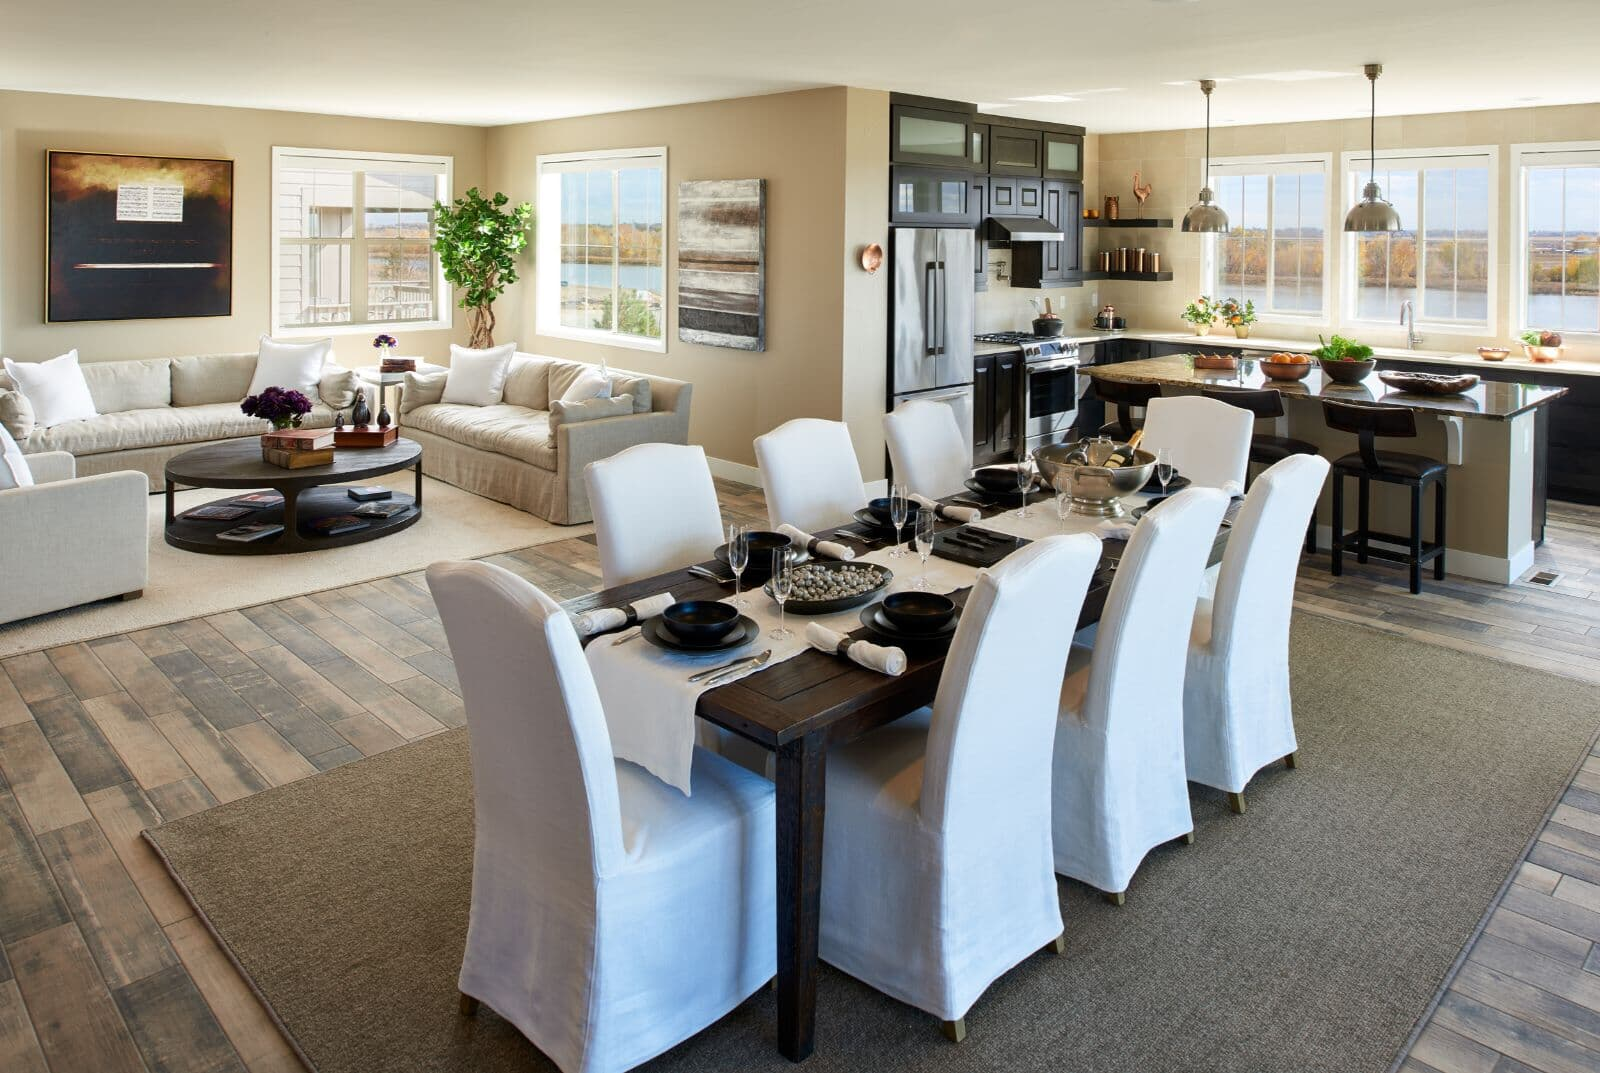 Harvest-Two-Dining-Room-Barefoot-Lakes-Denver-Colorado